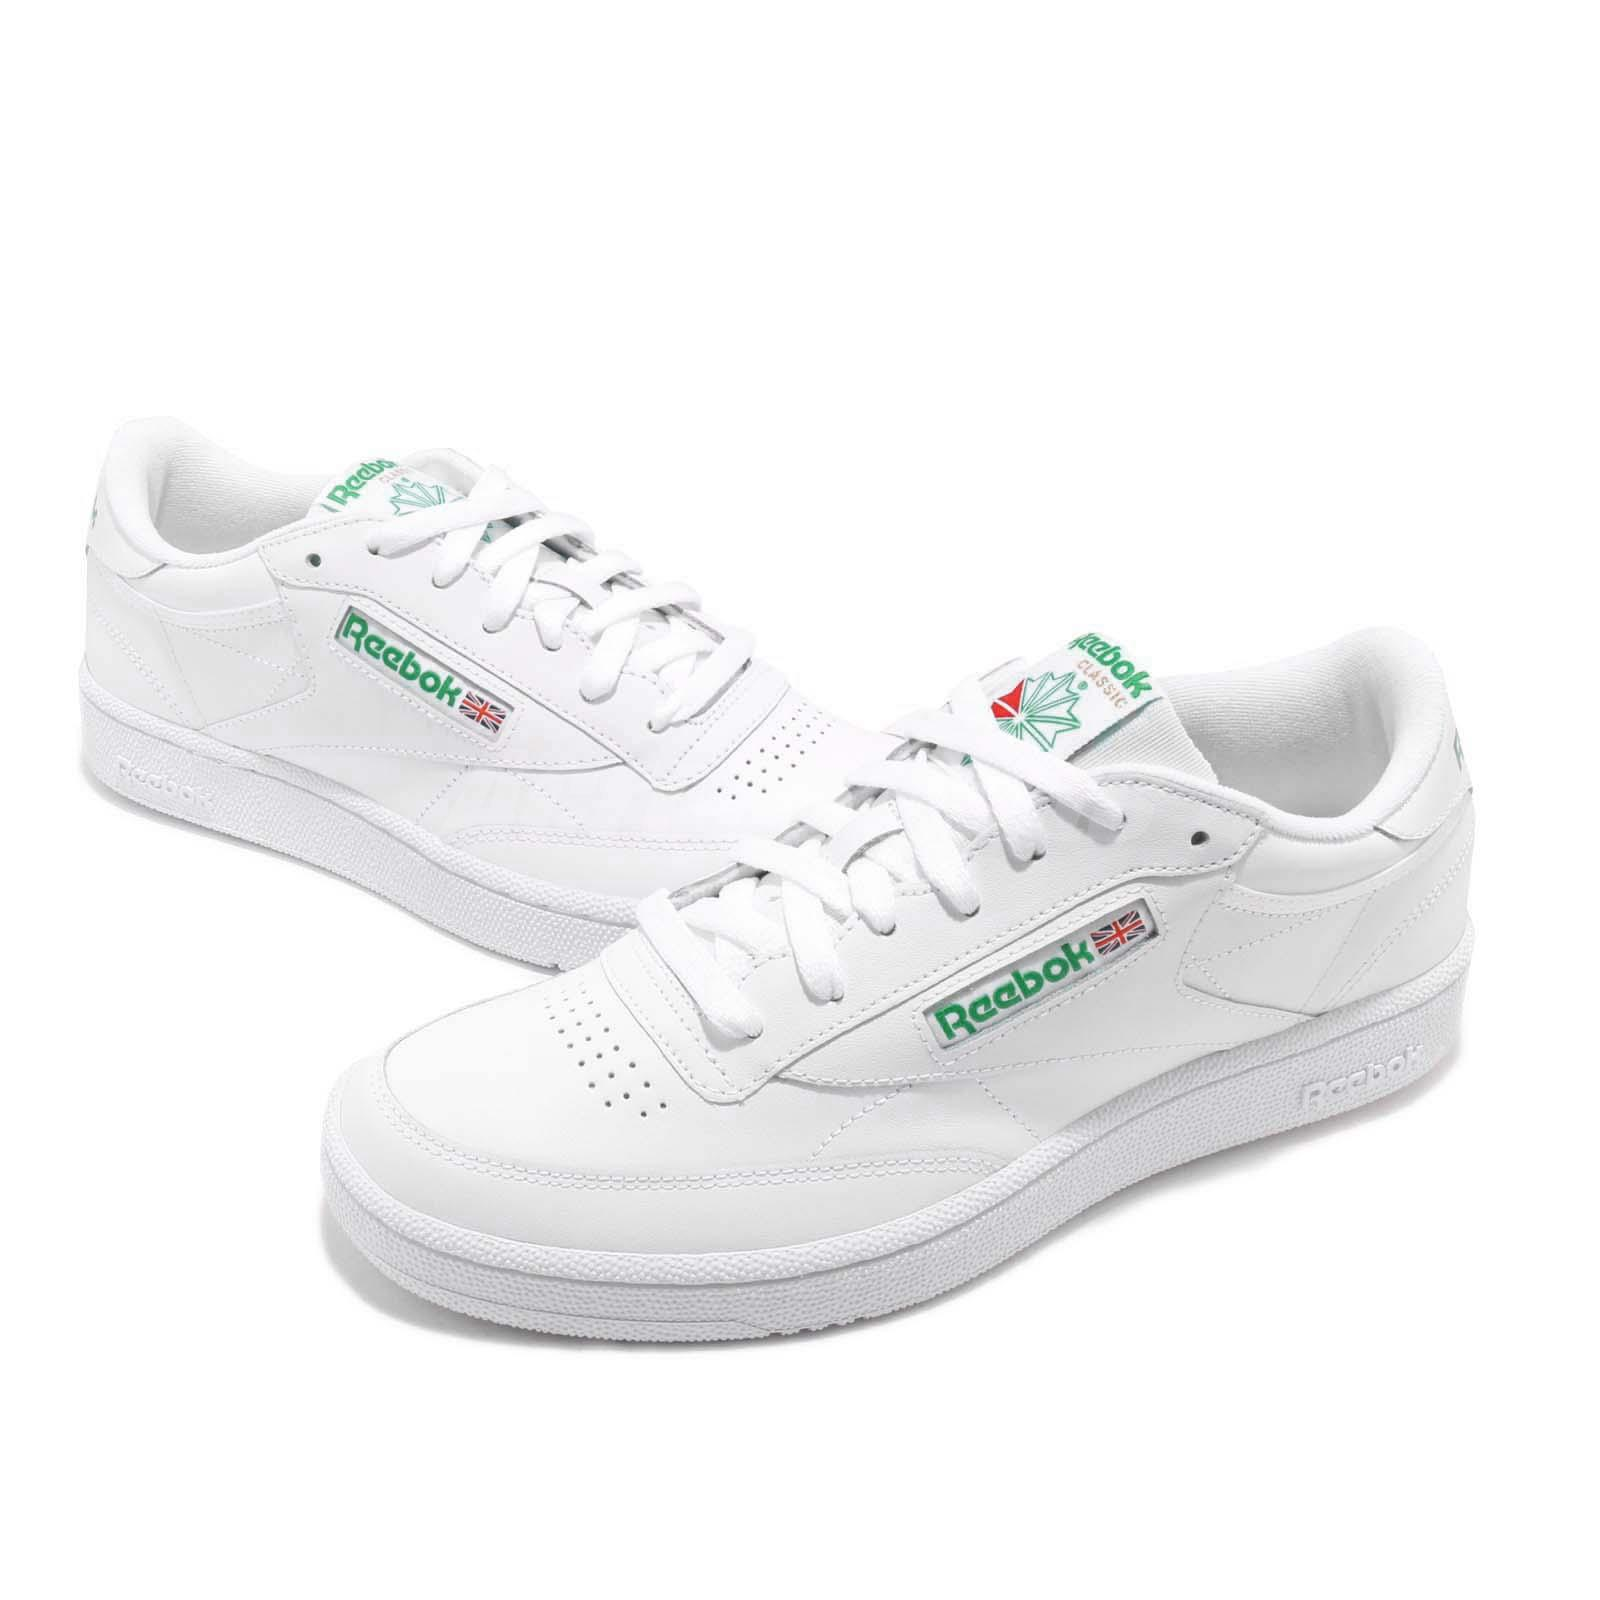 5c66e0b032a Details about Reebok Club C 85 White Green Men Classic Casual Lifestyle  Shoes Sneakers AR0456